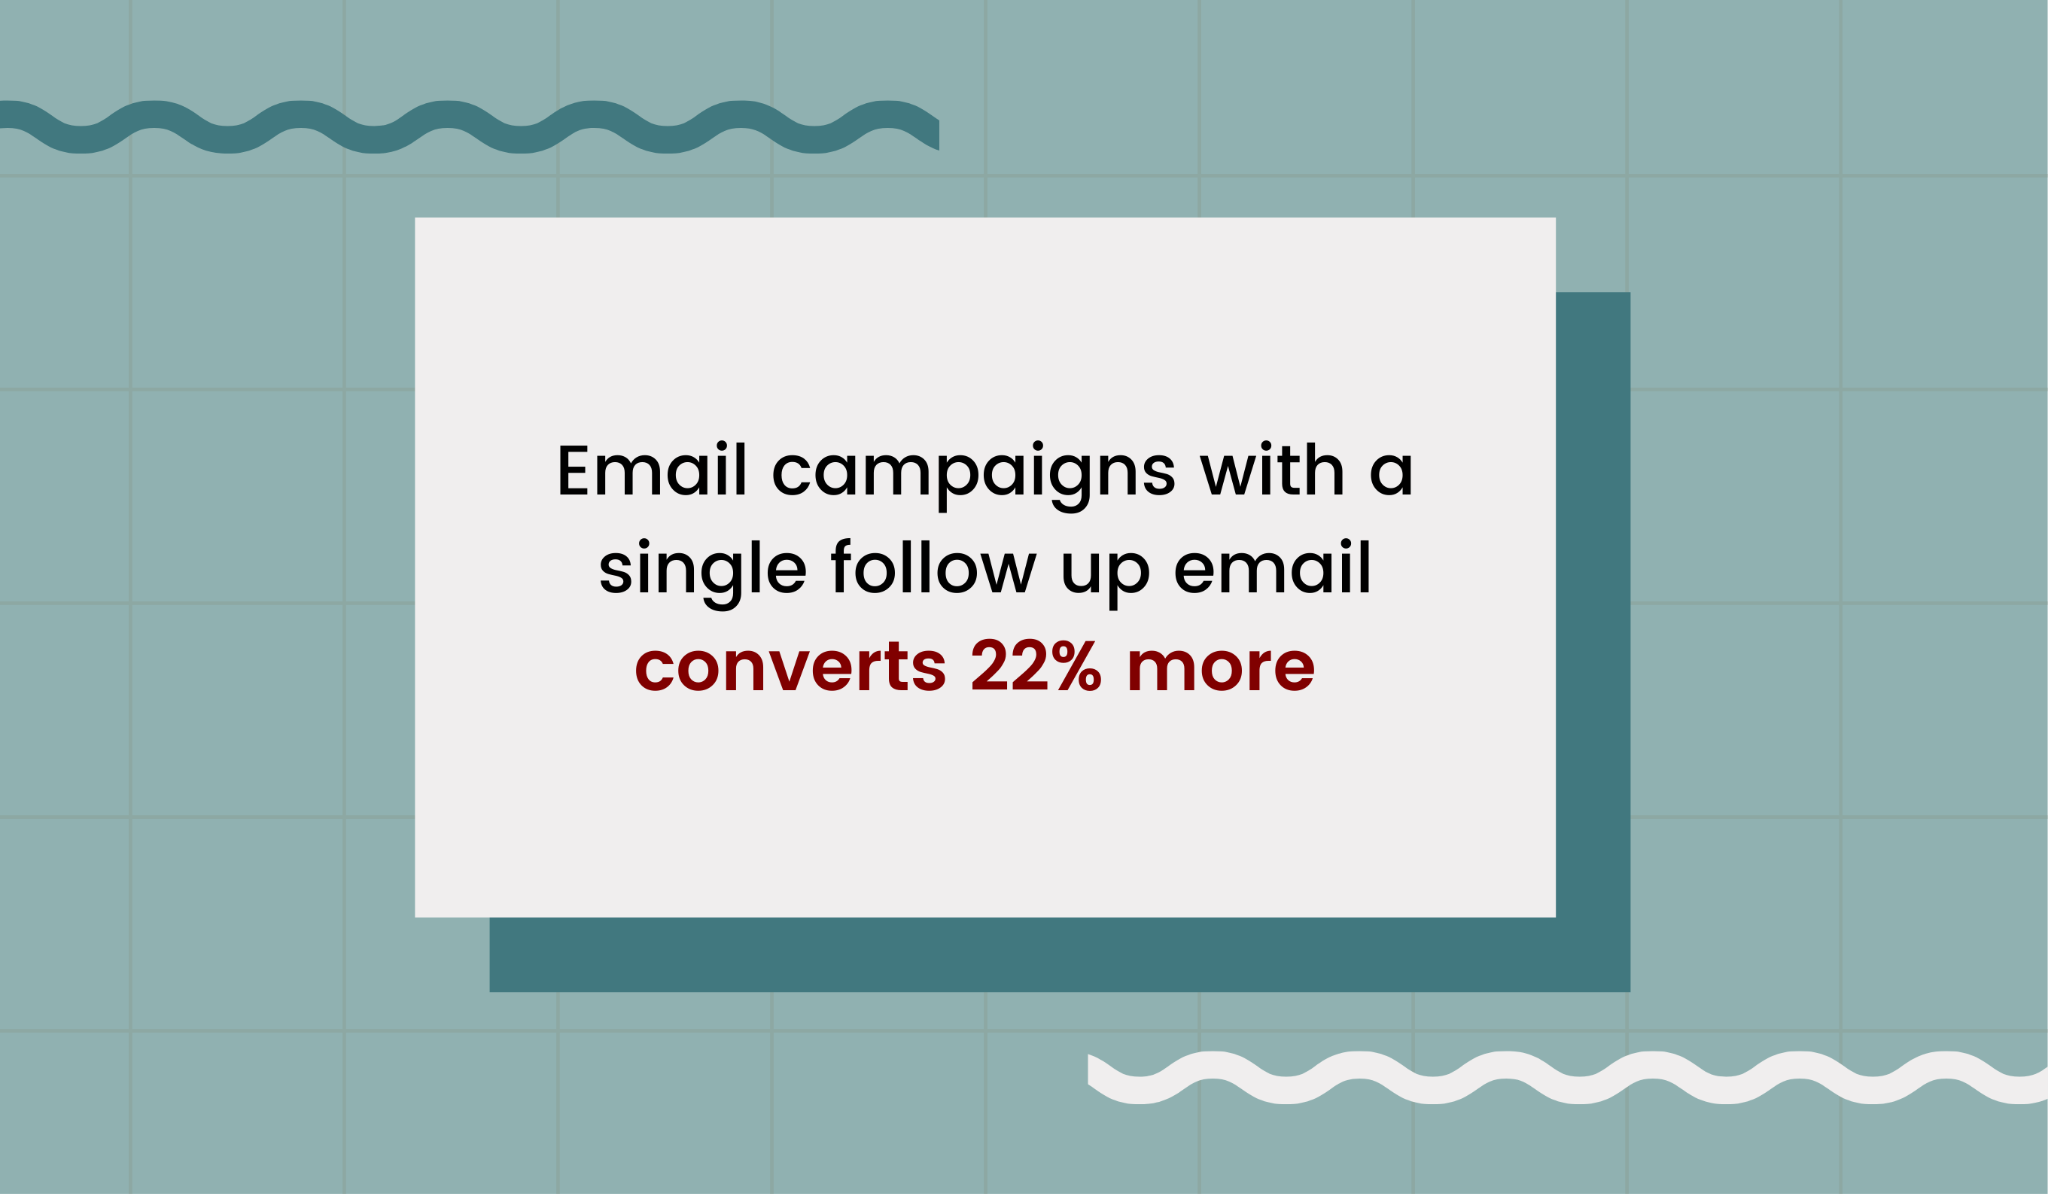 Follow up emails convert 22% more prospects